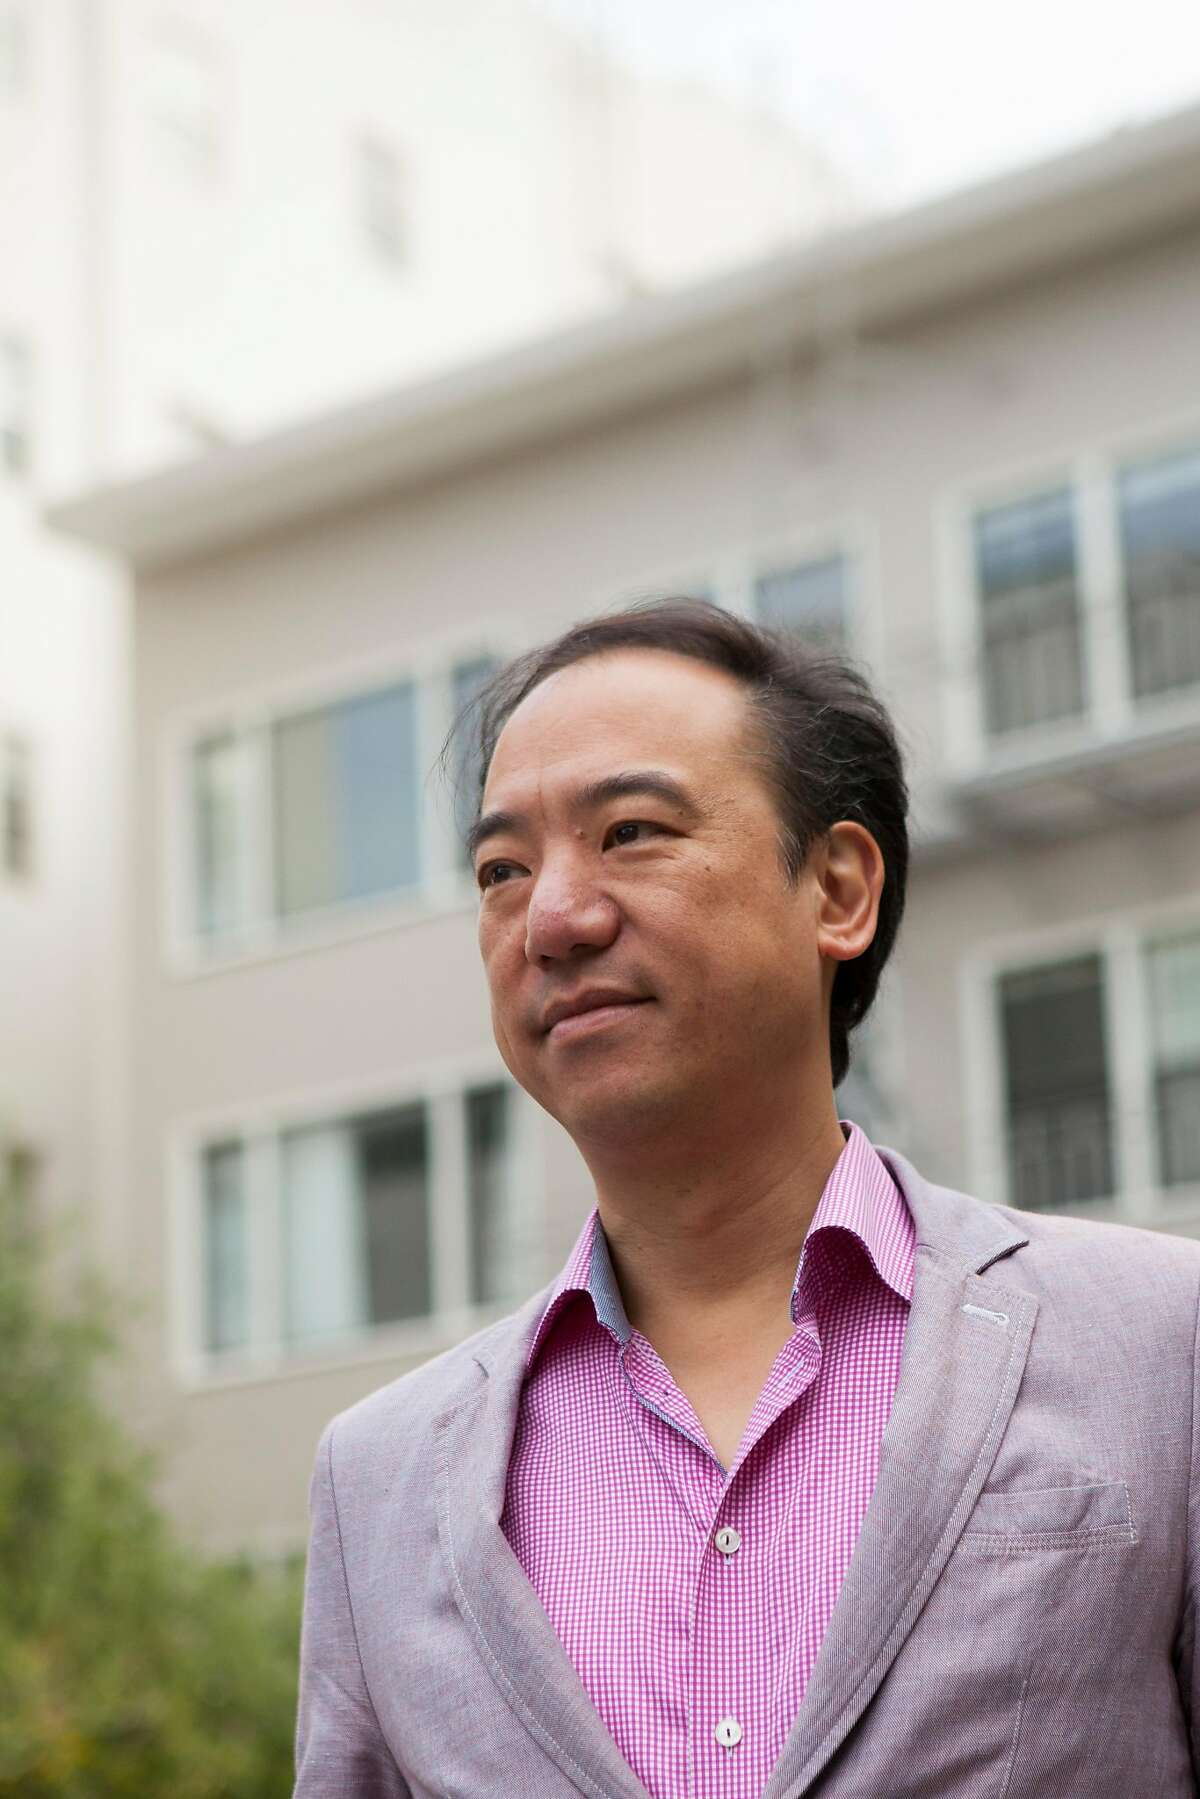 CEO of Veritas Investments Yat-Pang Au poses for a portrait in San Francisco Calif. on Friday, November 3, 2017.